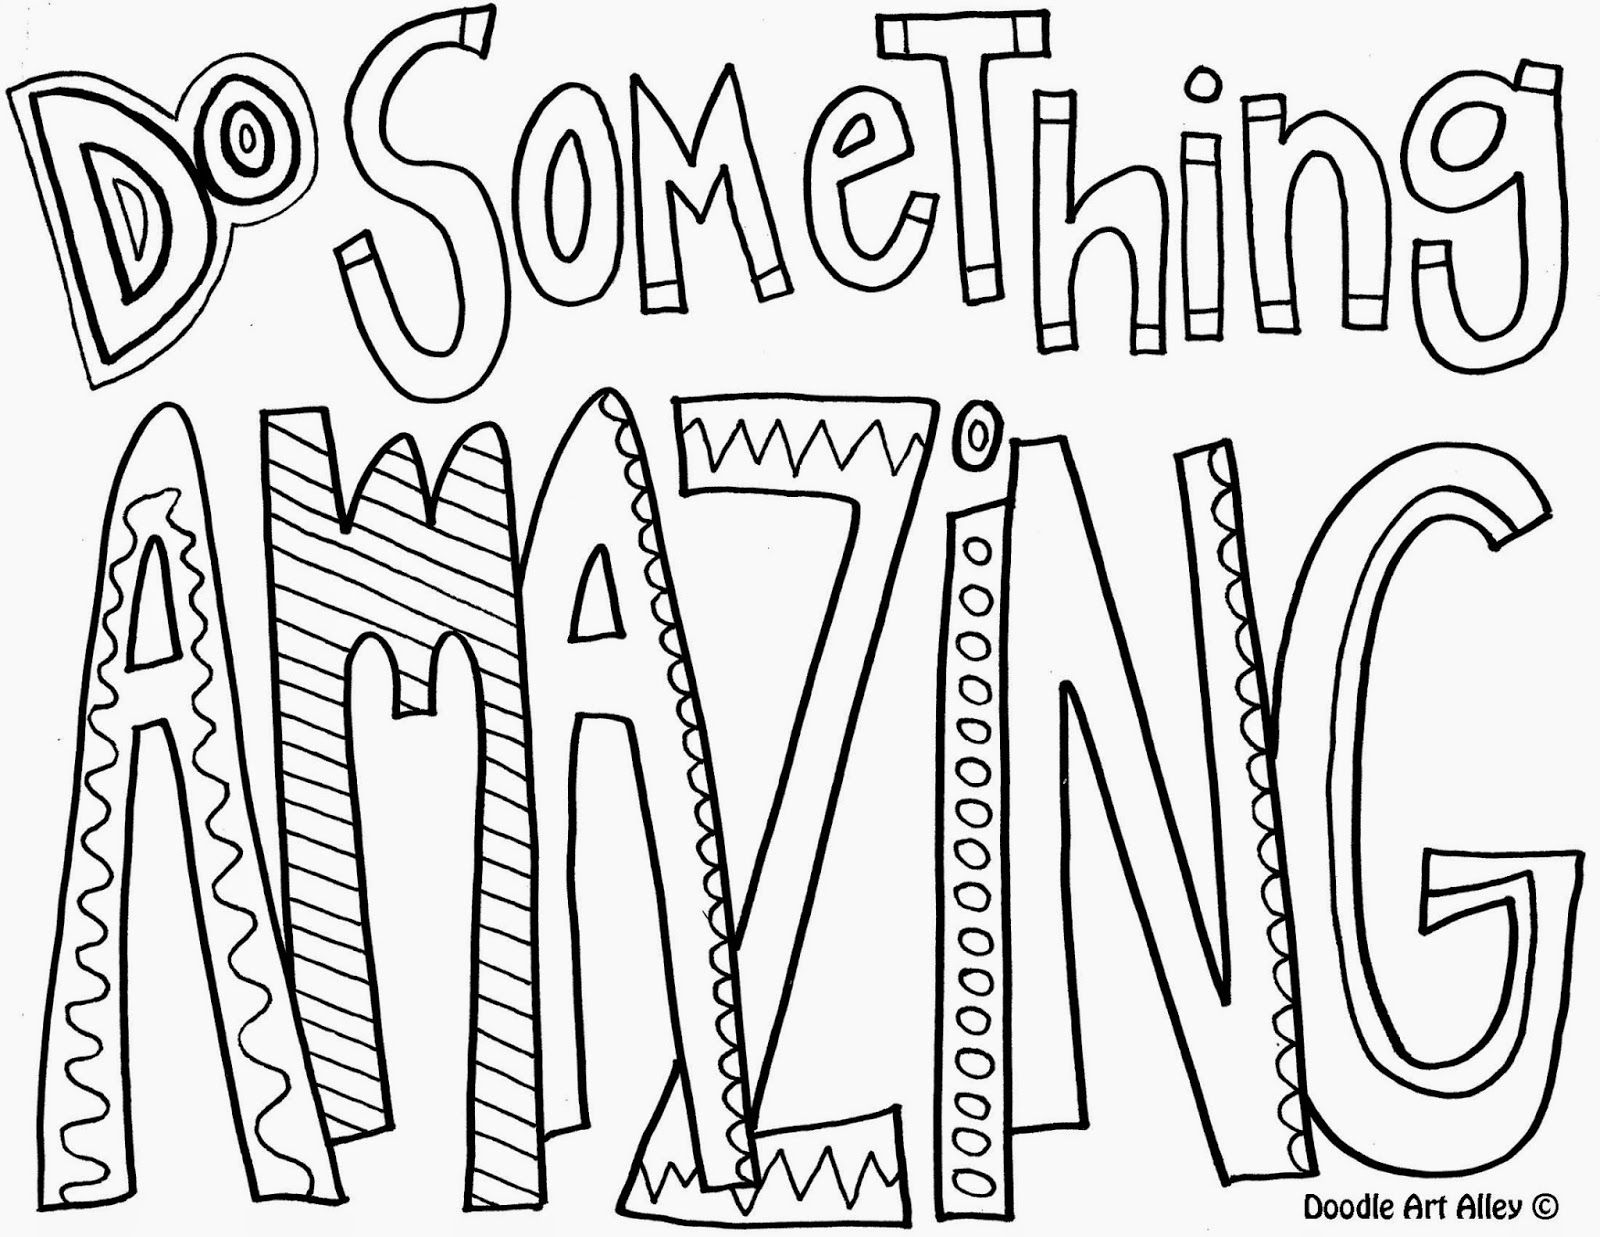 Quote coloring pages free online printable coloring pages sheets for kids get the latest free quote coloring pages images favorite coloring pages to